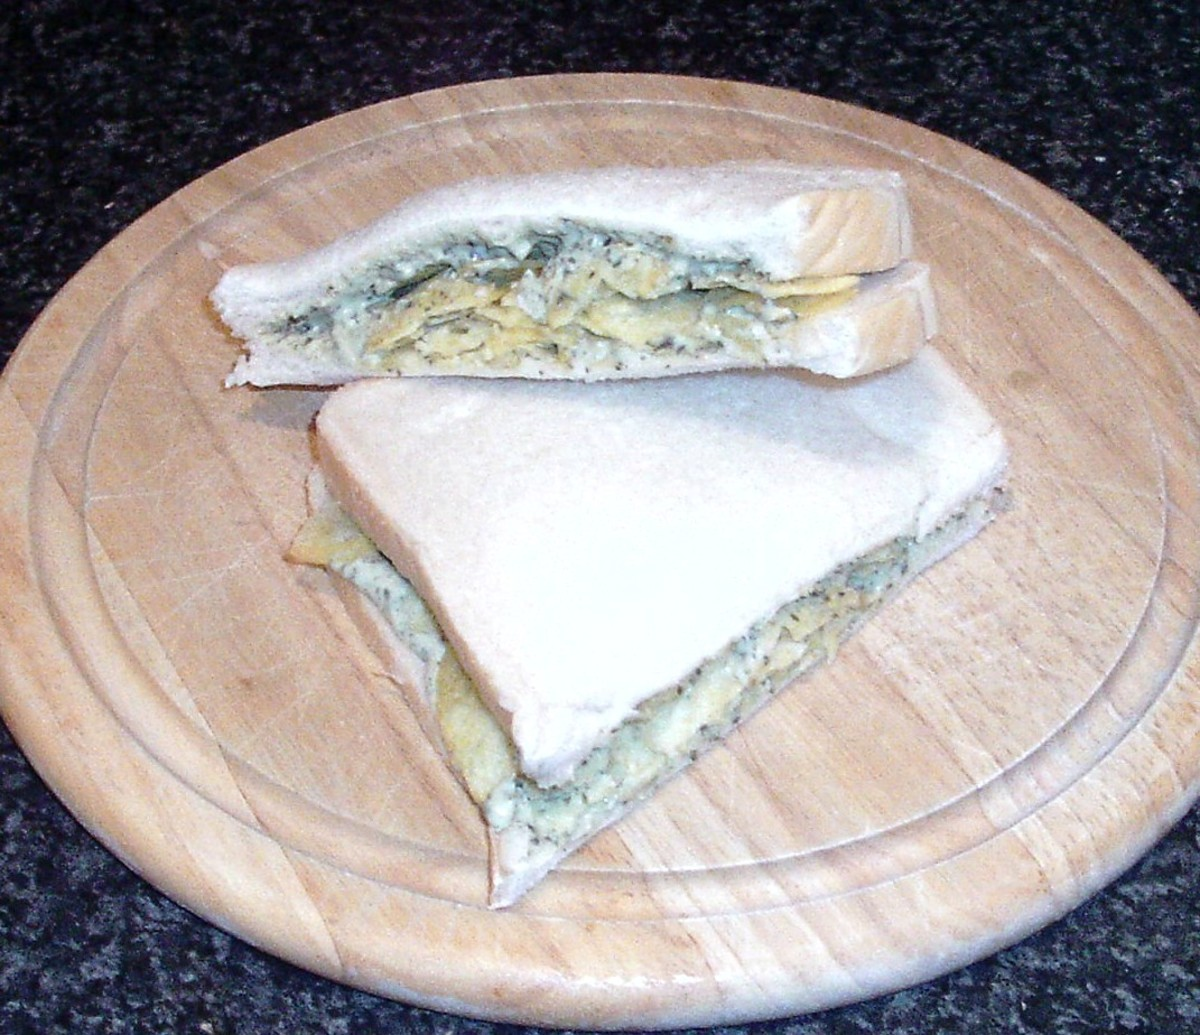 Mint sauce infused houmous and salt and vinegar crisps sandwich